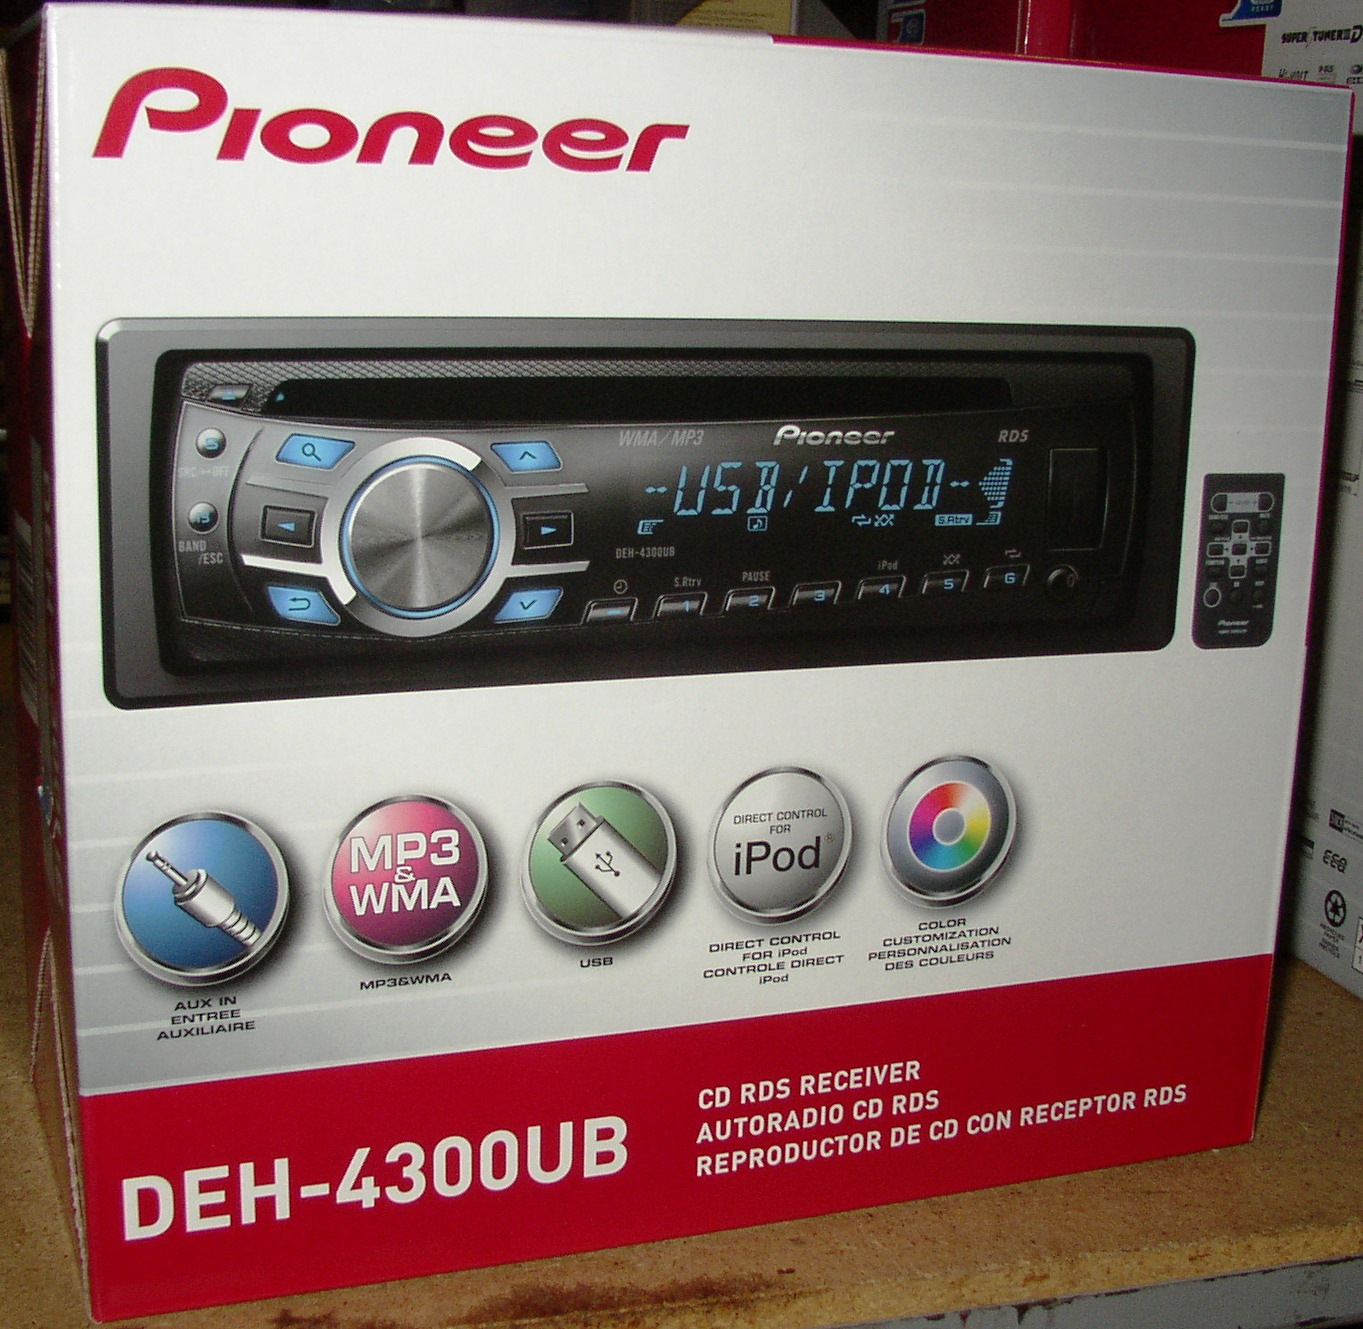 Pioneer Deh 15 Wiring Diagram likewise Pioneer Avh X2800bs Wiring Diagram For Ranger besides Metra 70 1721 Wiring Diagram To Pioneer as well Pioneer Avh P3200bt Wiring Diagram also Ustanovka Avtomagnitoly Pioner 16. on pioneer deh 2700 wiring diagram